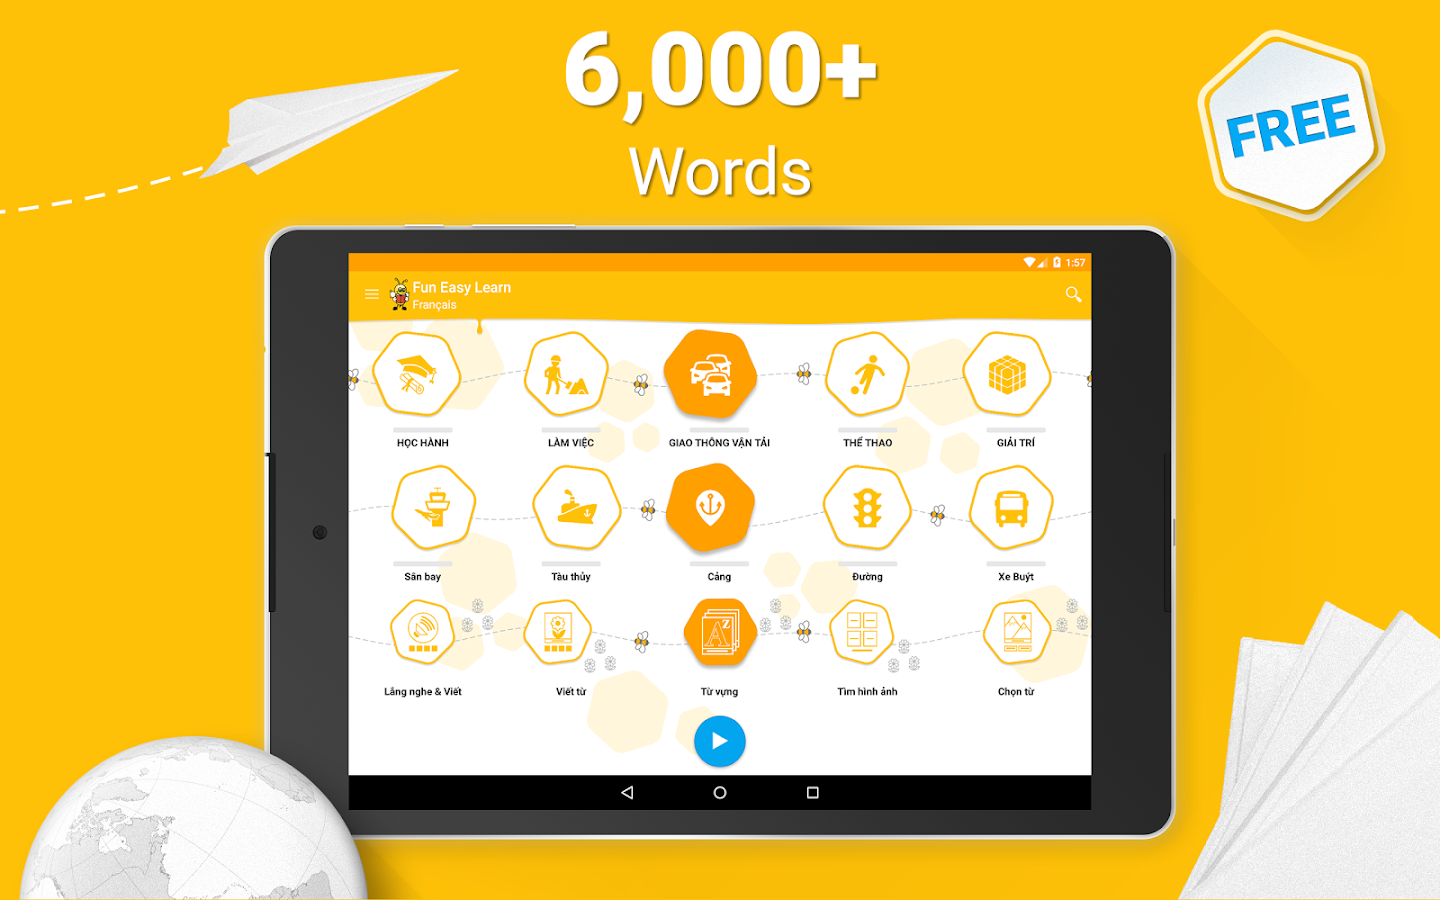 Learn French - 6,000 Words- screenshot